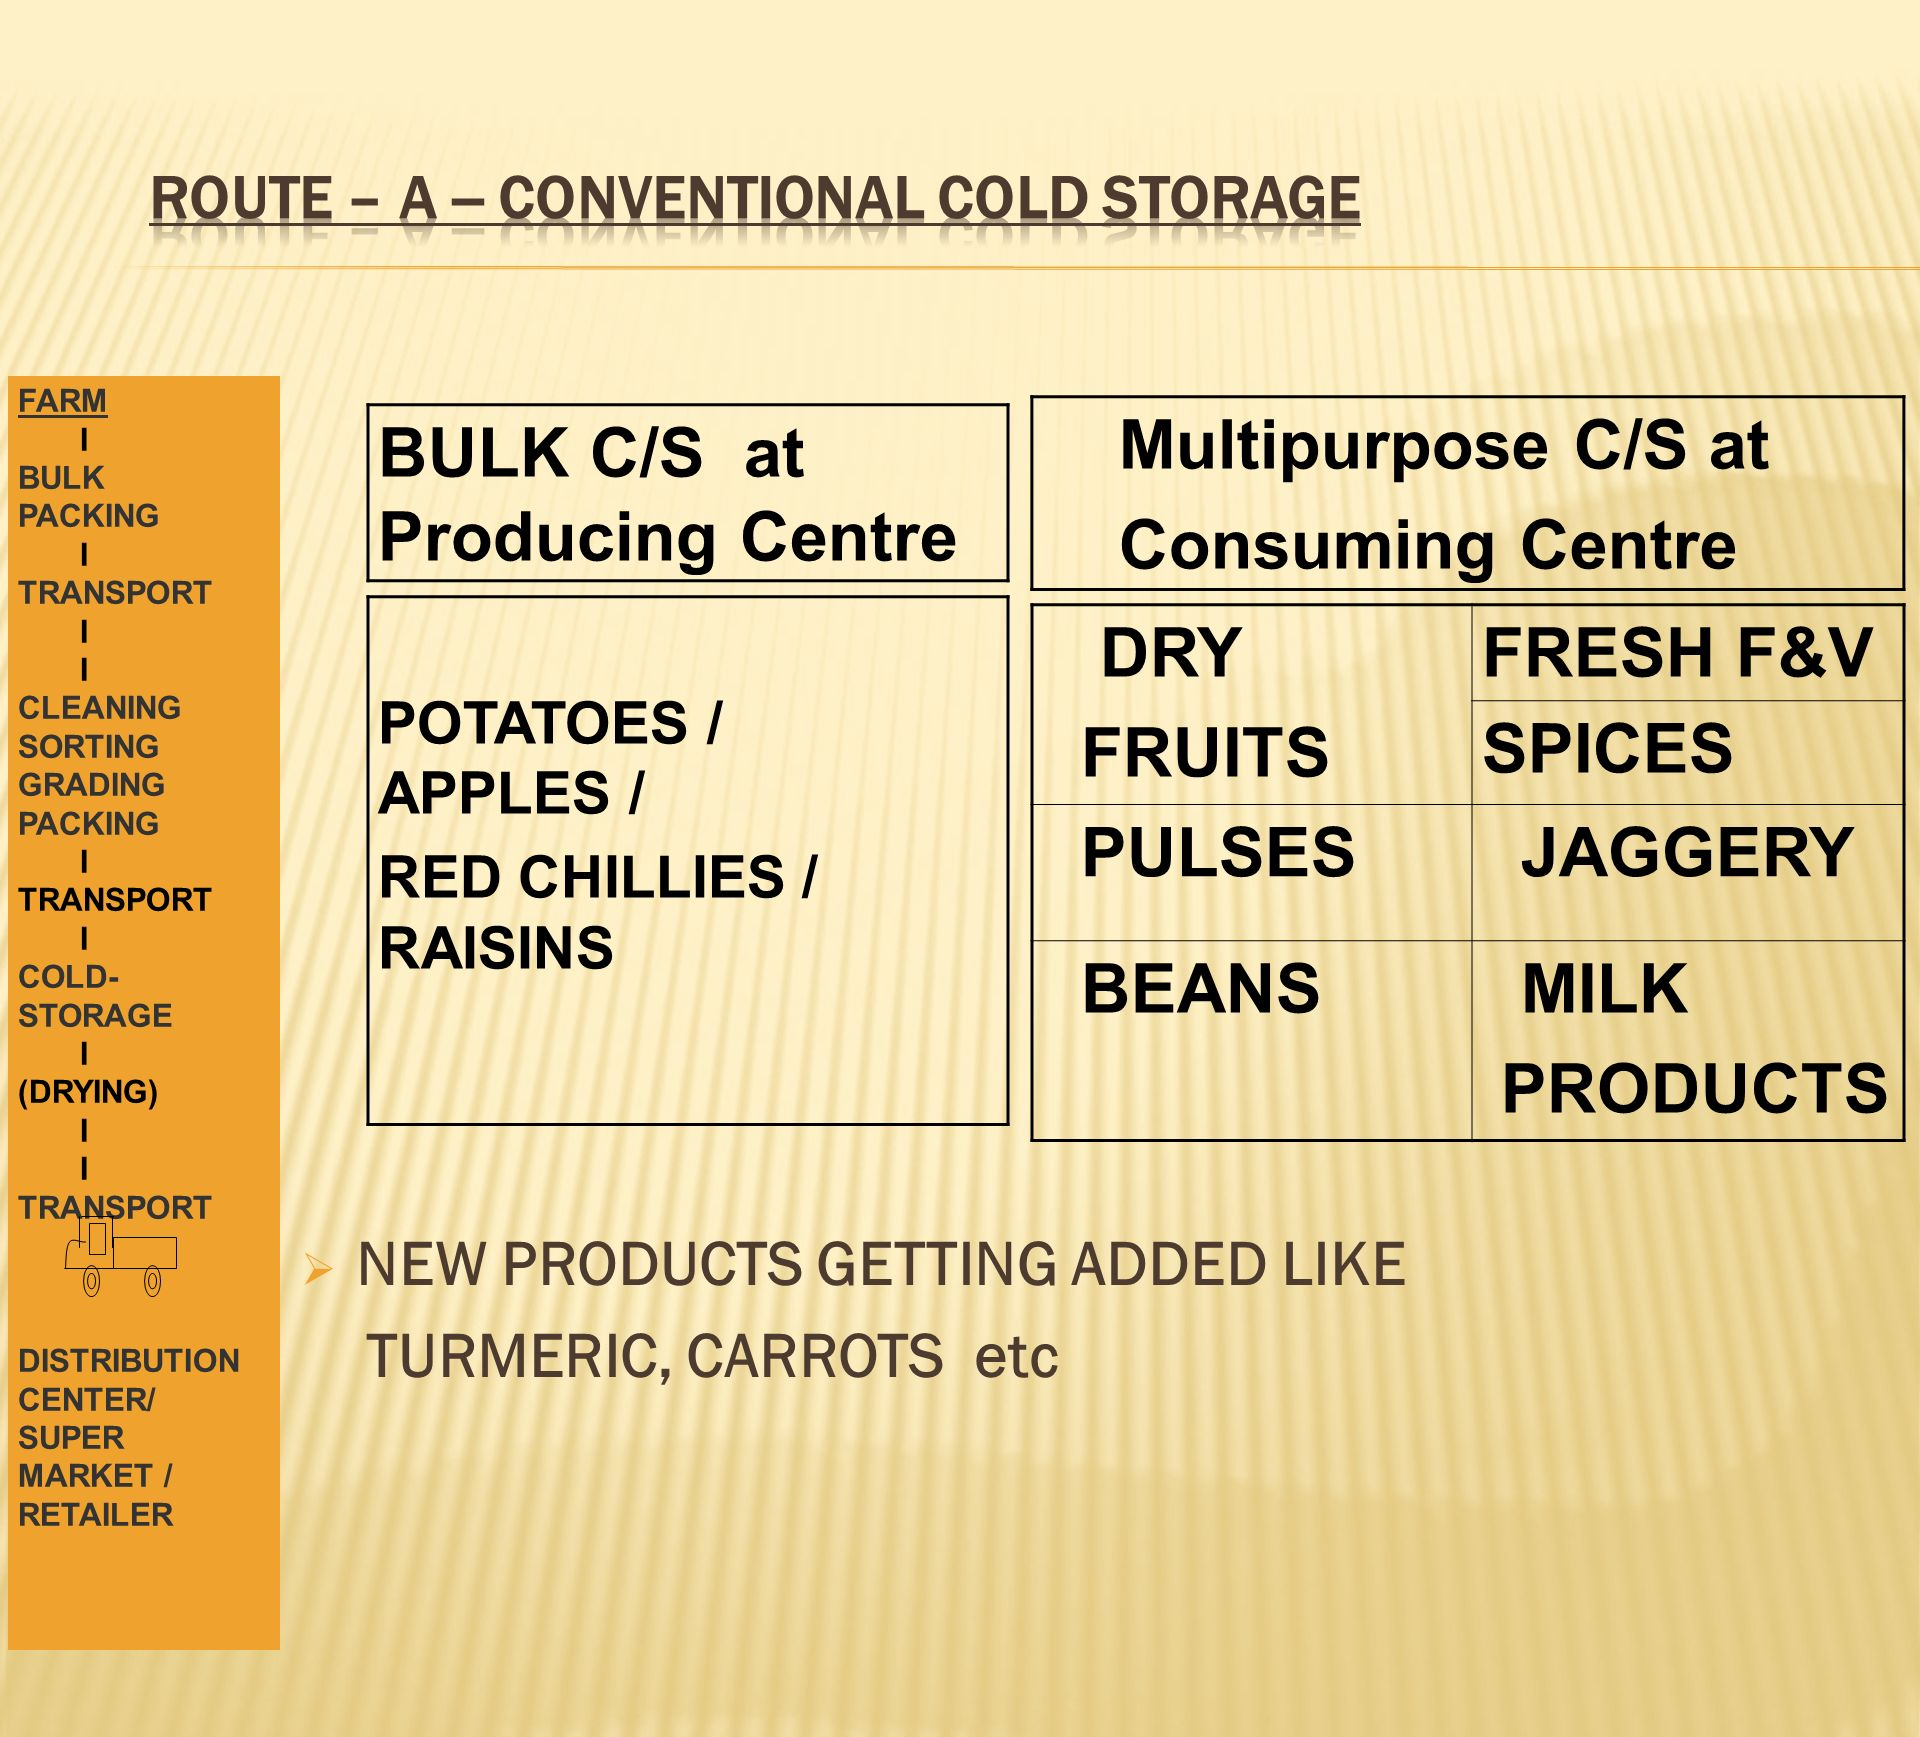 ROUTE – A -- CONVENTIONAL COLD STORAGE